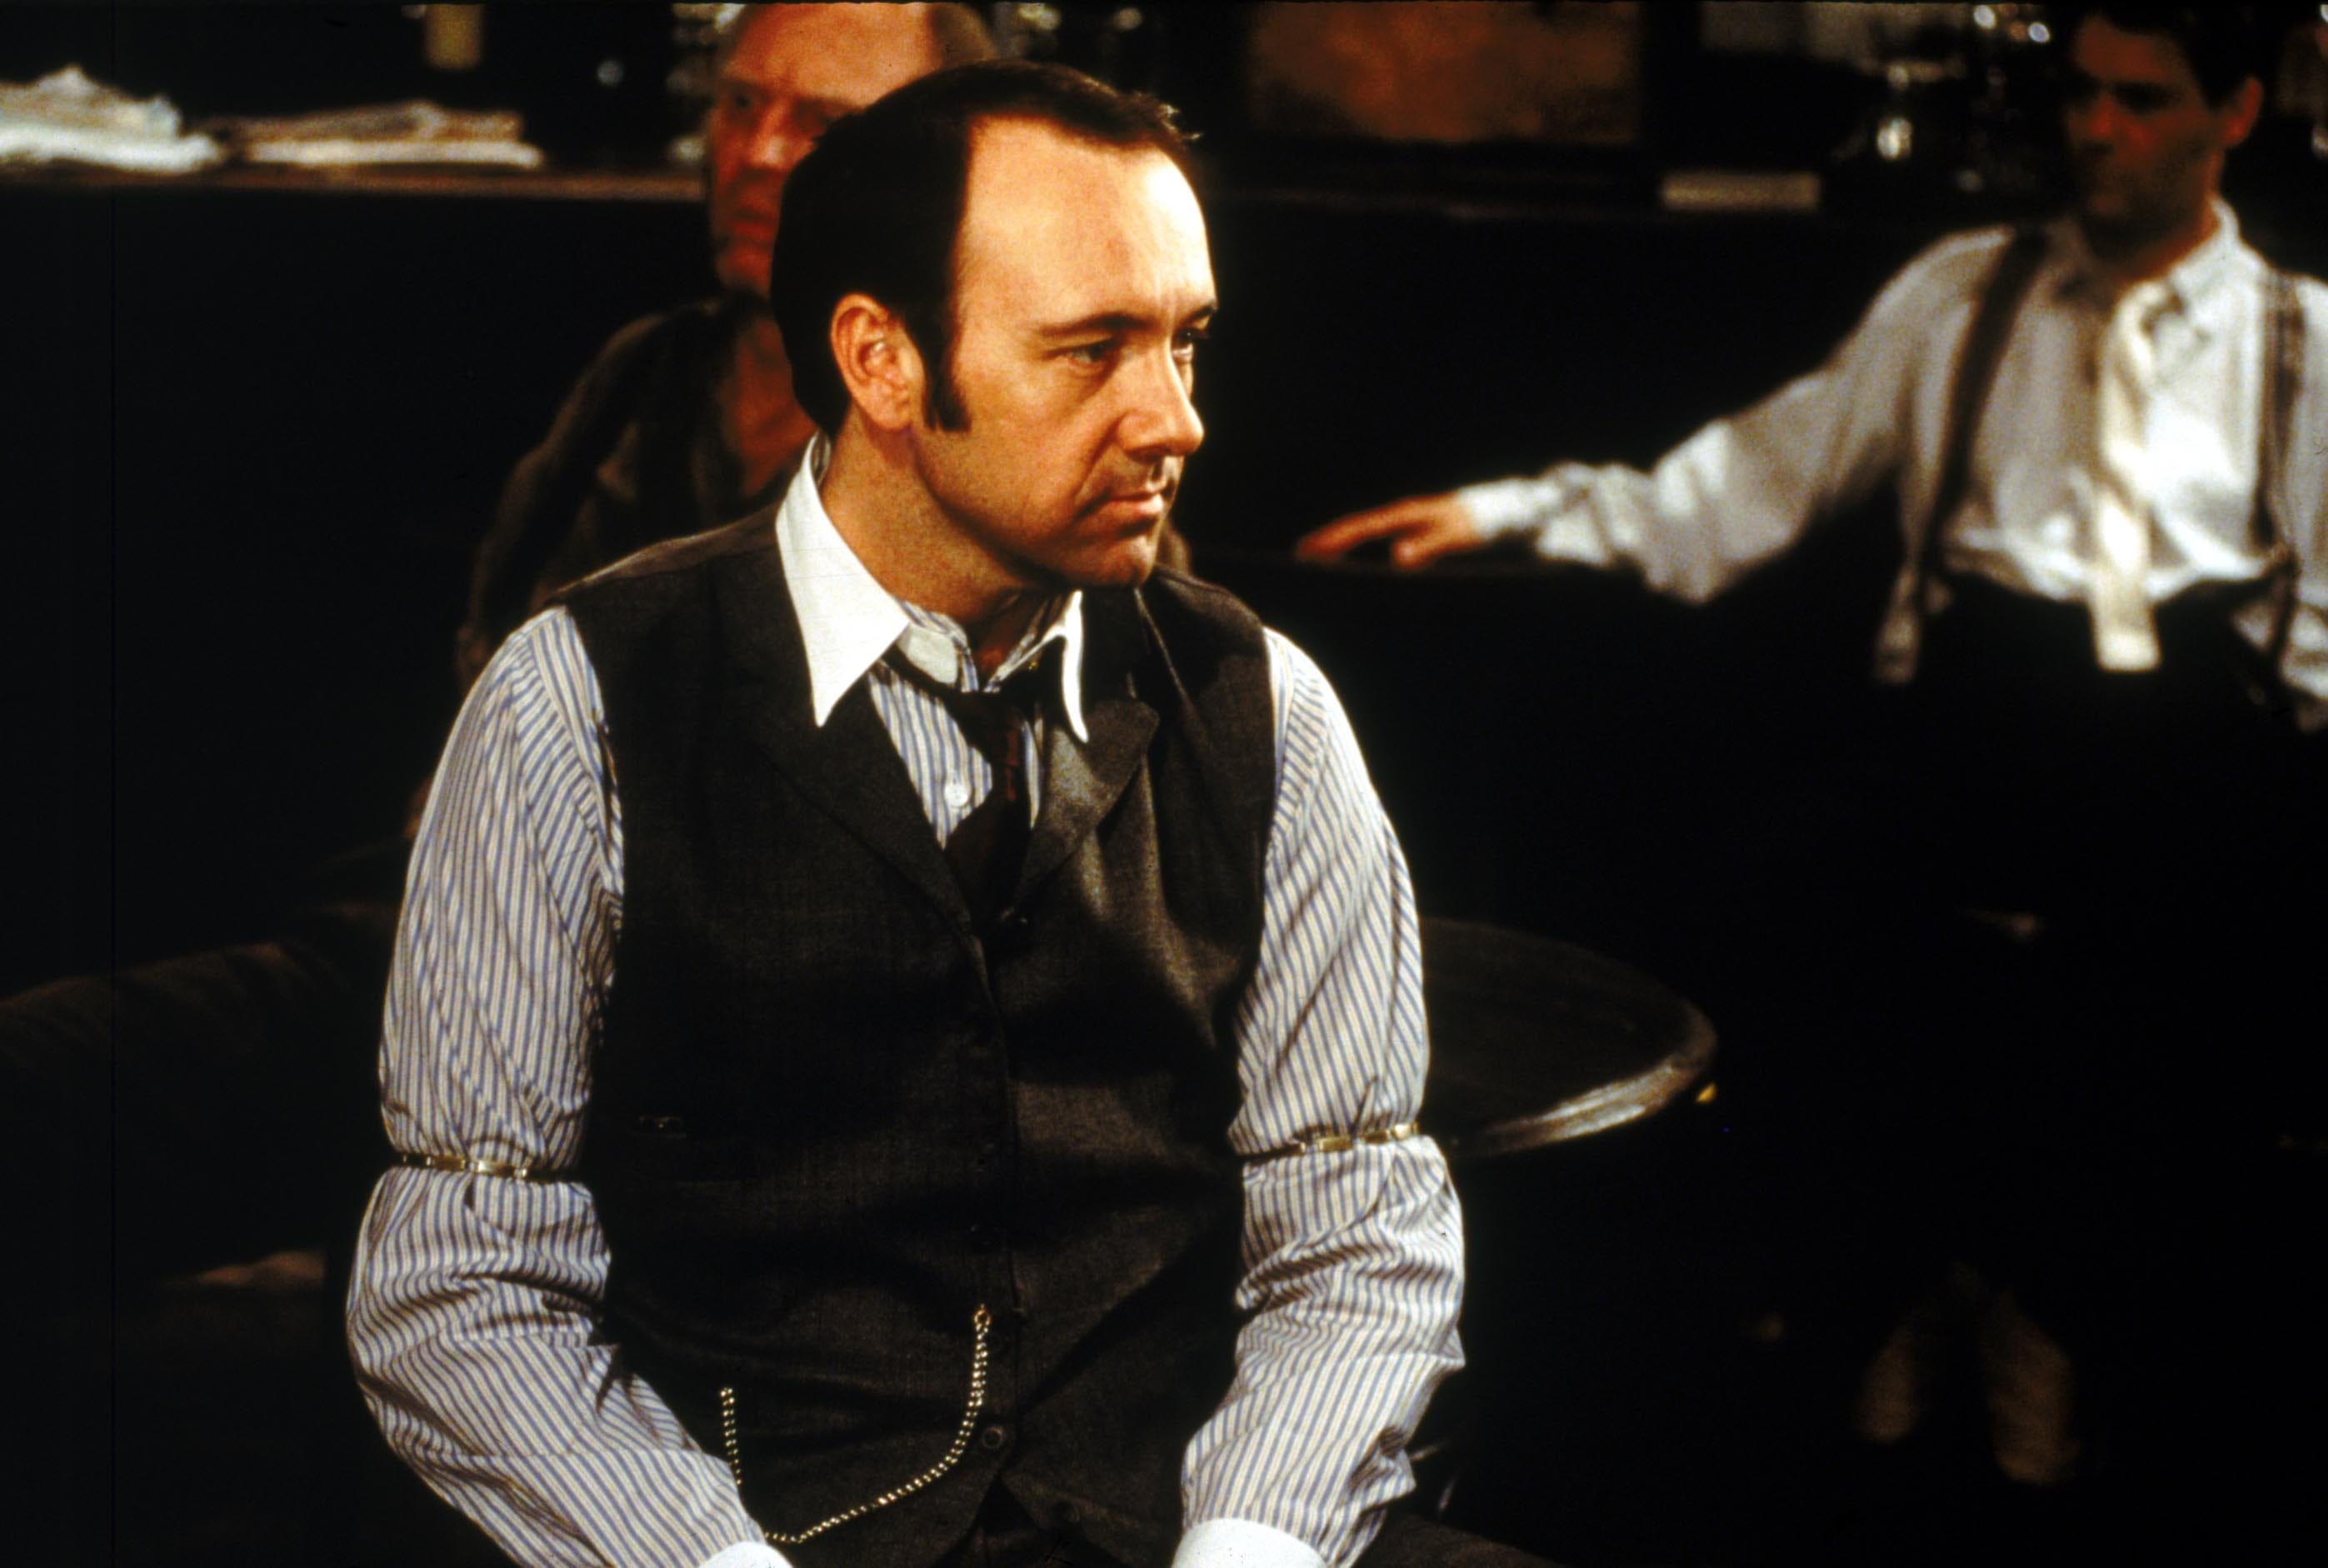 Kevin Spacey in the play